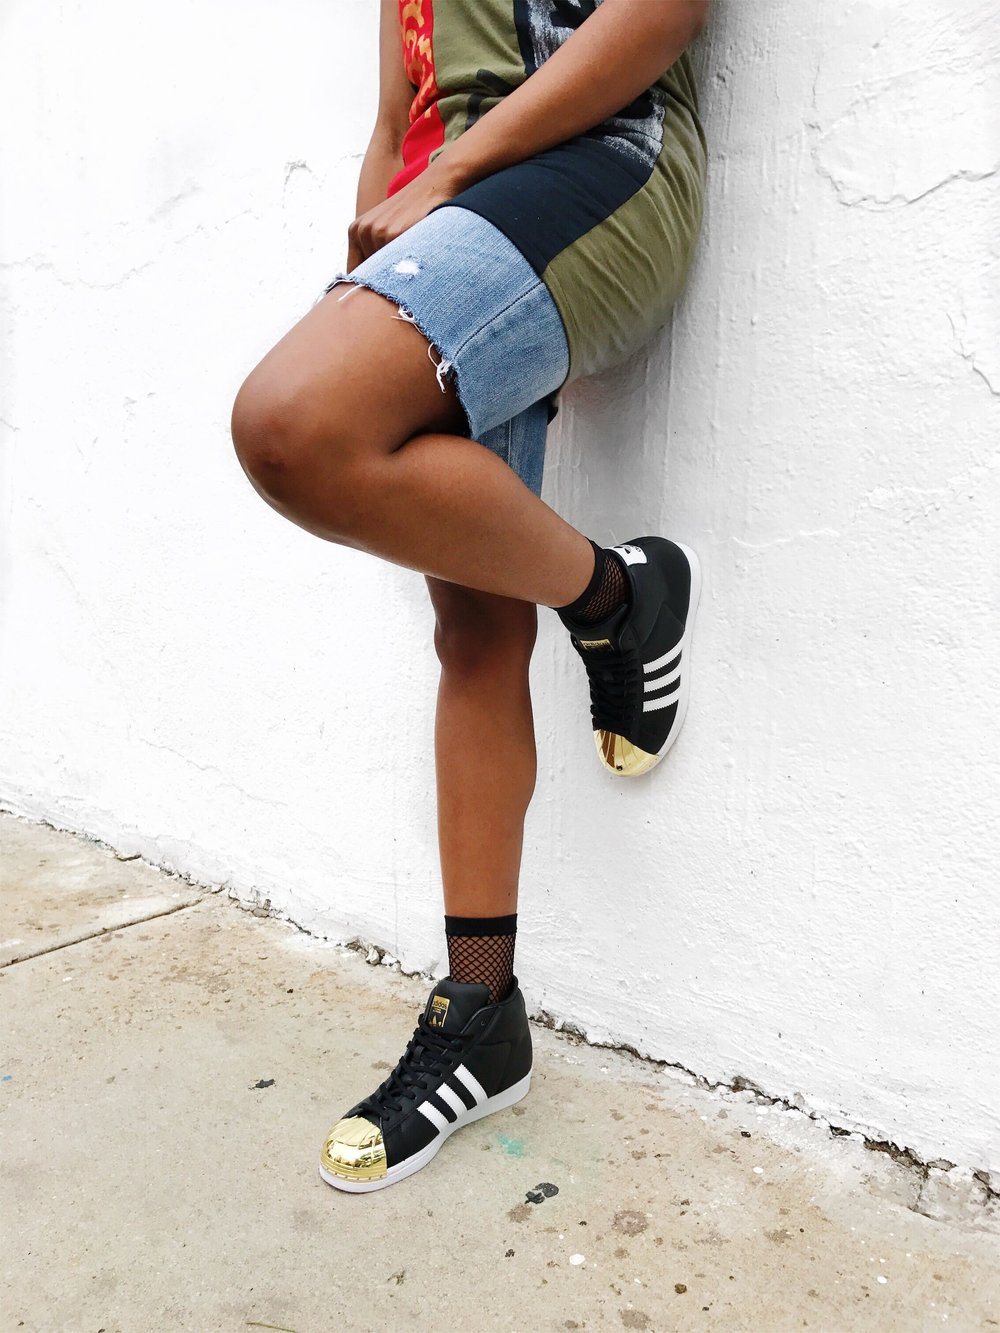 cocomocha urban art wear black red army green one shoulder top distressed denim shorts adidas pro model black white gold toe sneaker